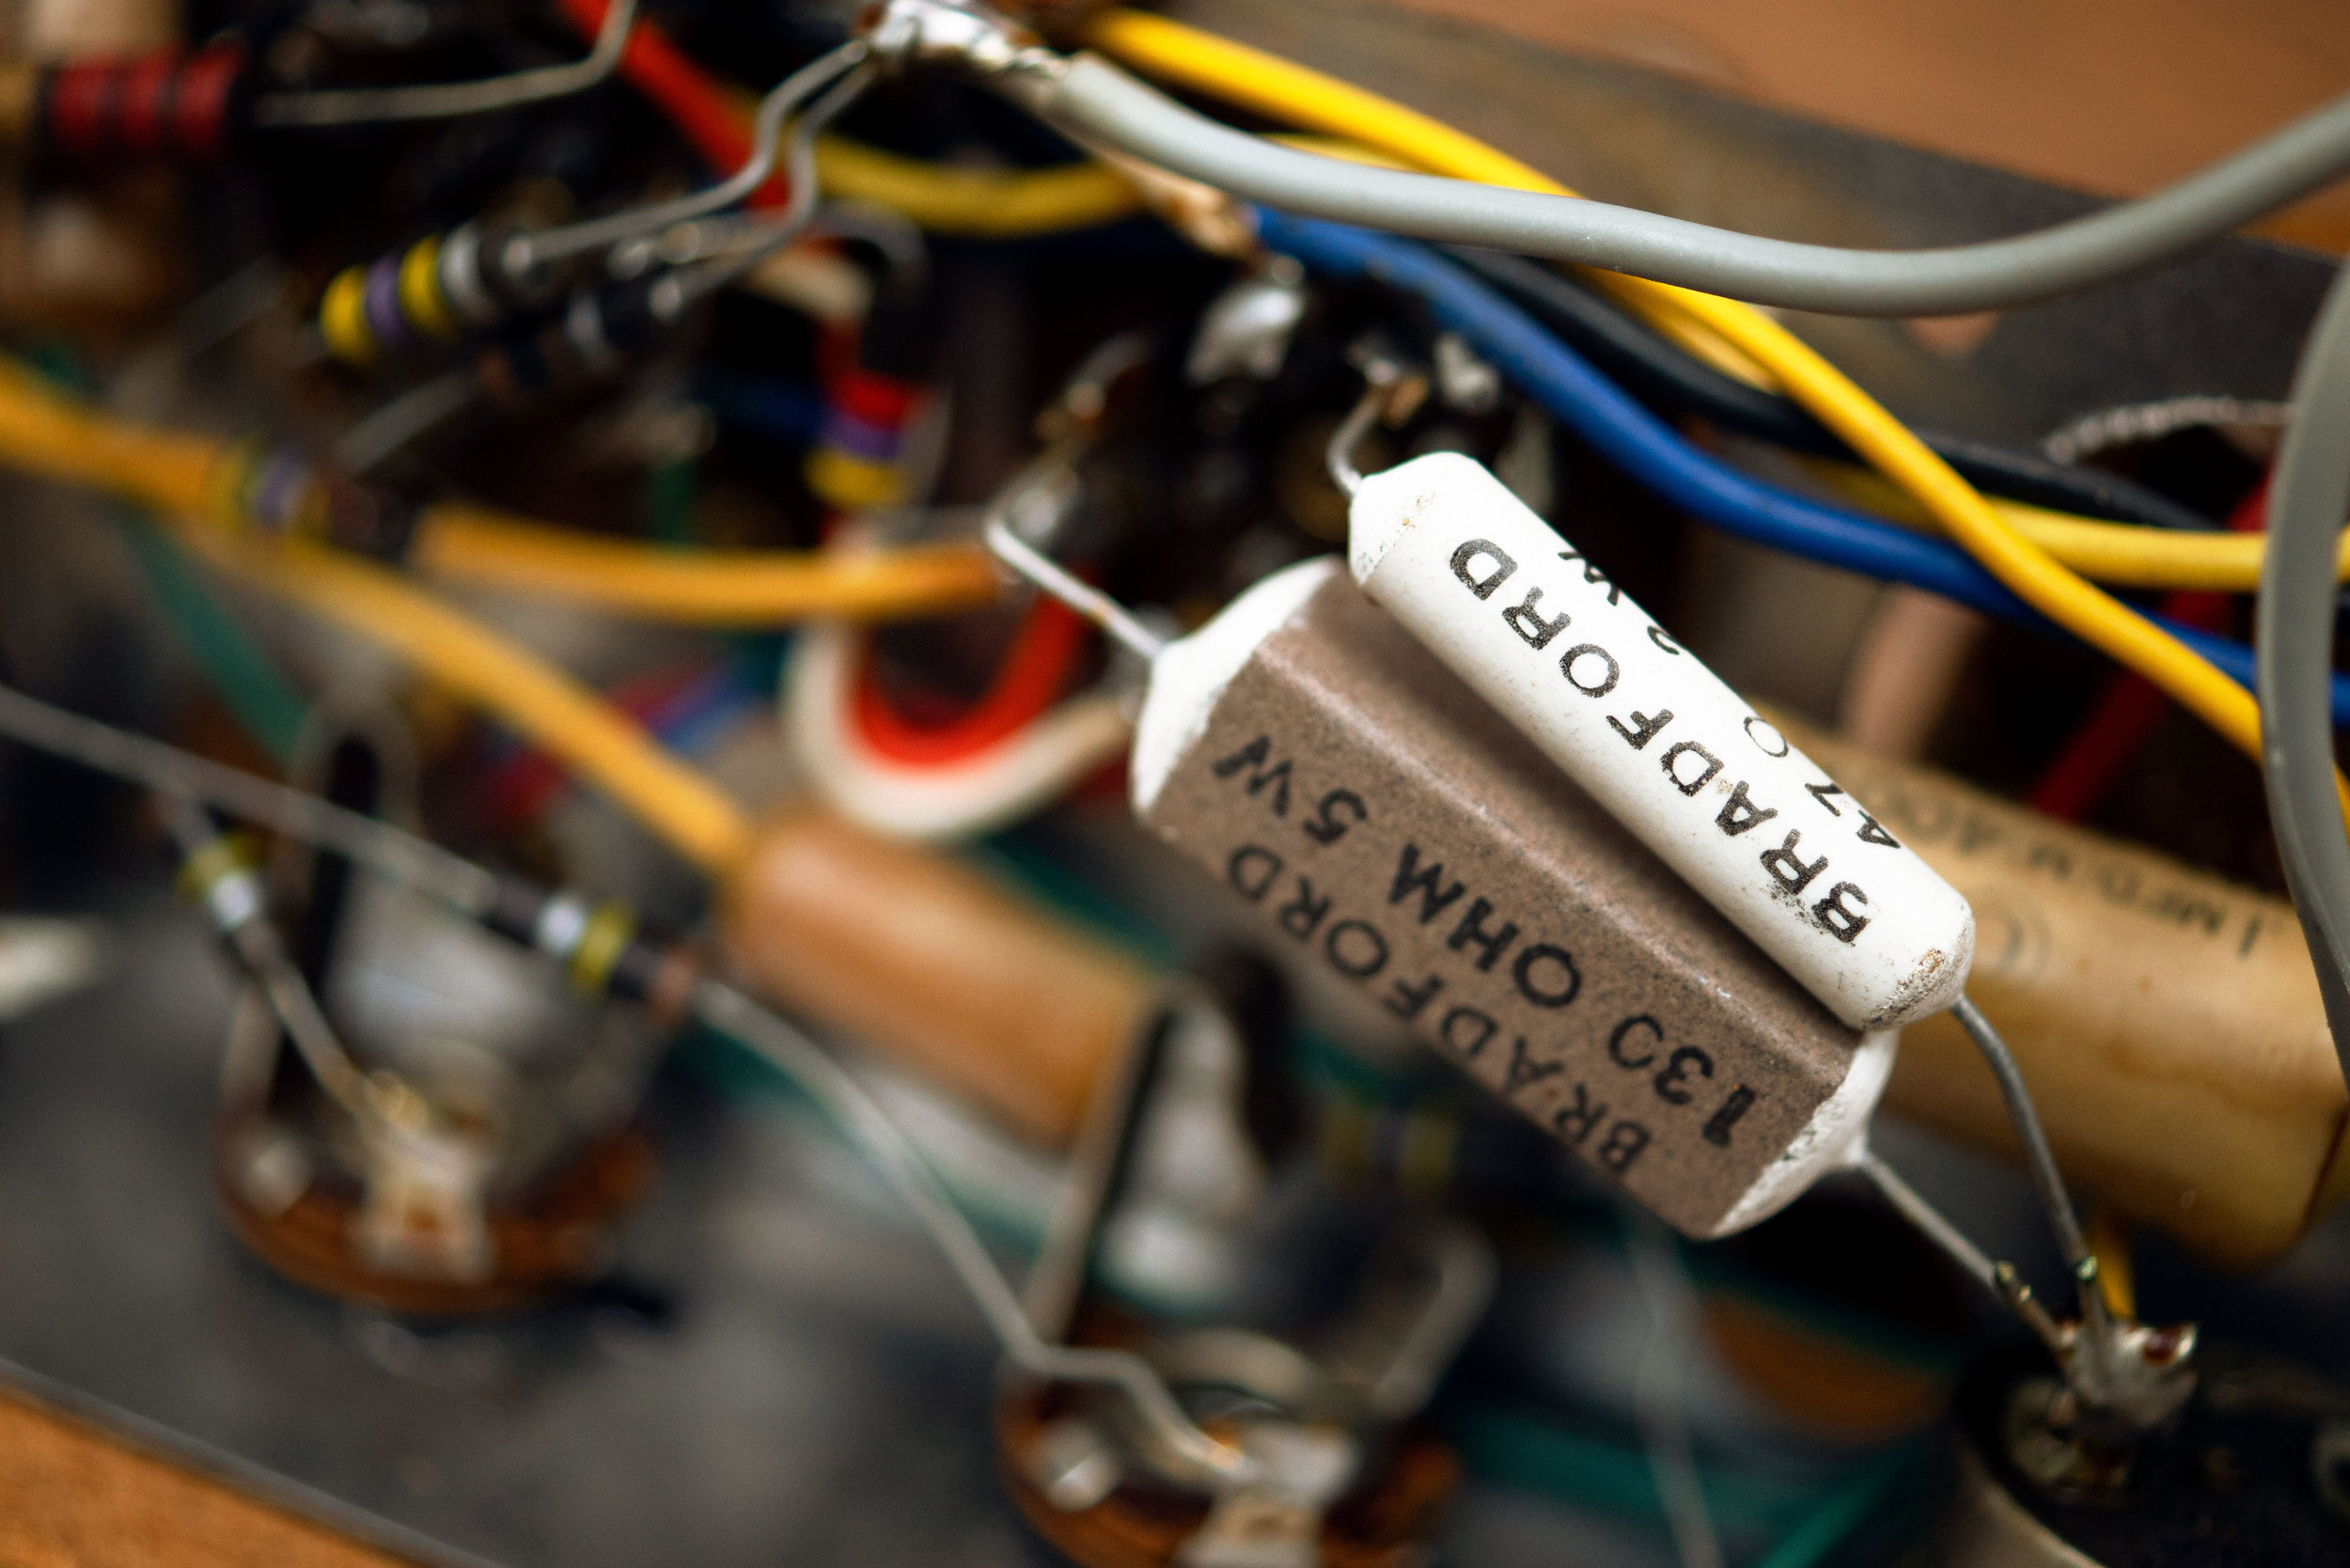 We were tempted to keep these resistors because we loved the vintage font. We didn't need that value in the circuit, though.